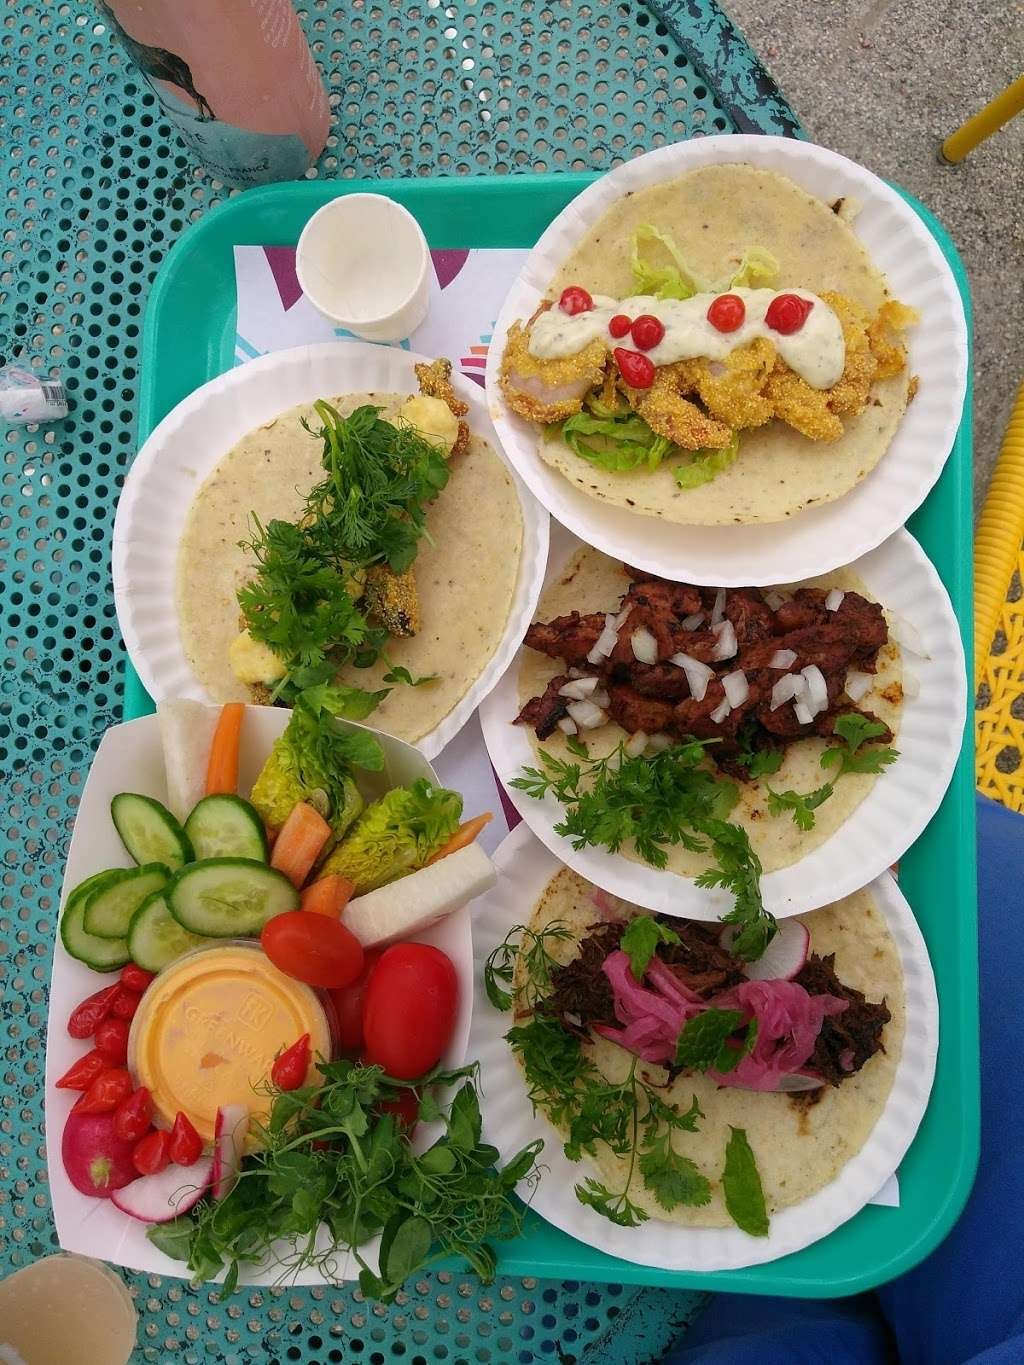 Tacocina - restaurant  | Photo 4 of 10 | Address: 25 River St, Brooklyn, NY 11249, USA | Phone: (646) 783-6825